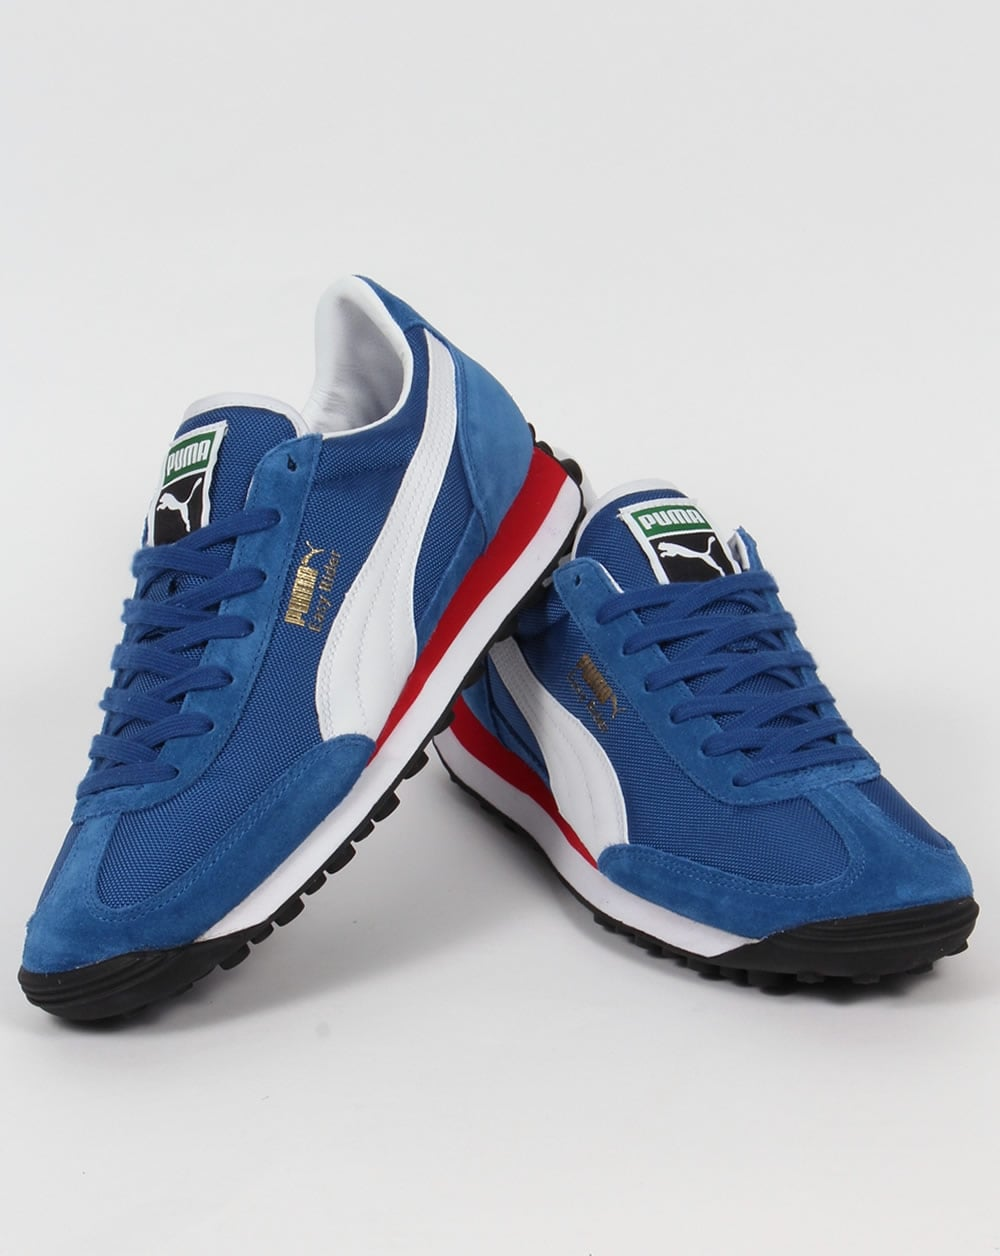 d5dd45916426 Puma Easy Rider Trainers True Blue White